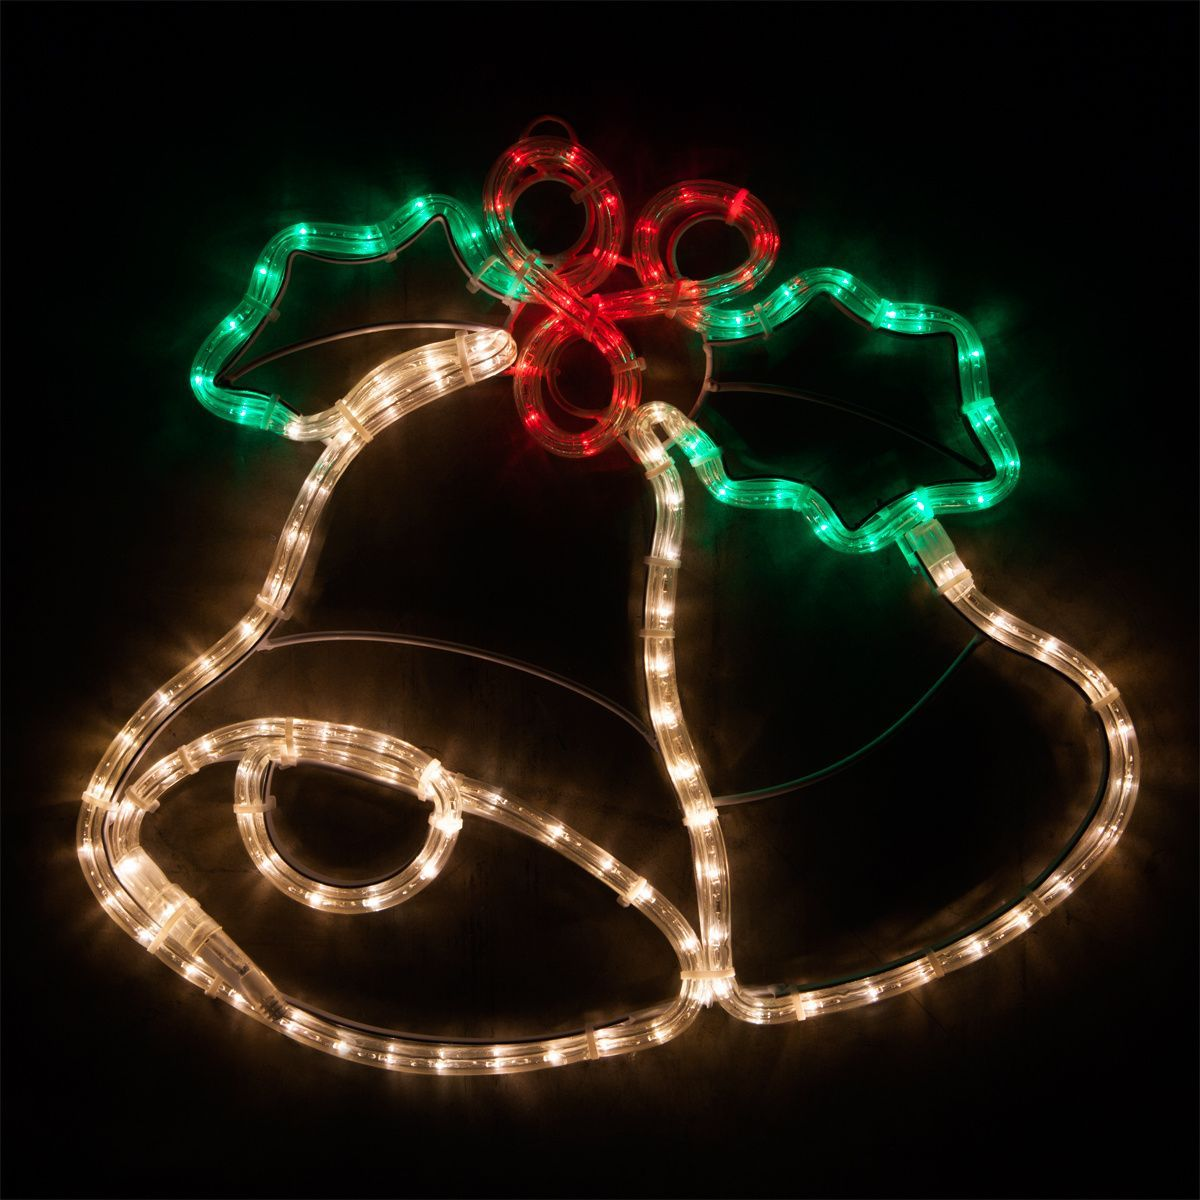 20 Led Christmas Bells With Holly Outdoorchristmasdecorations Christmas Bells Led Christmas Lights Decorating With Christmas Lights